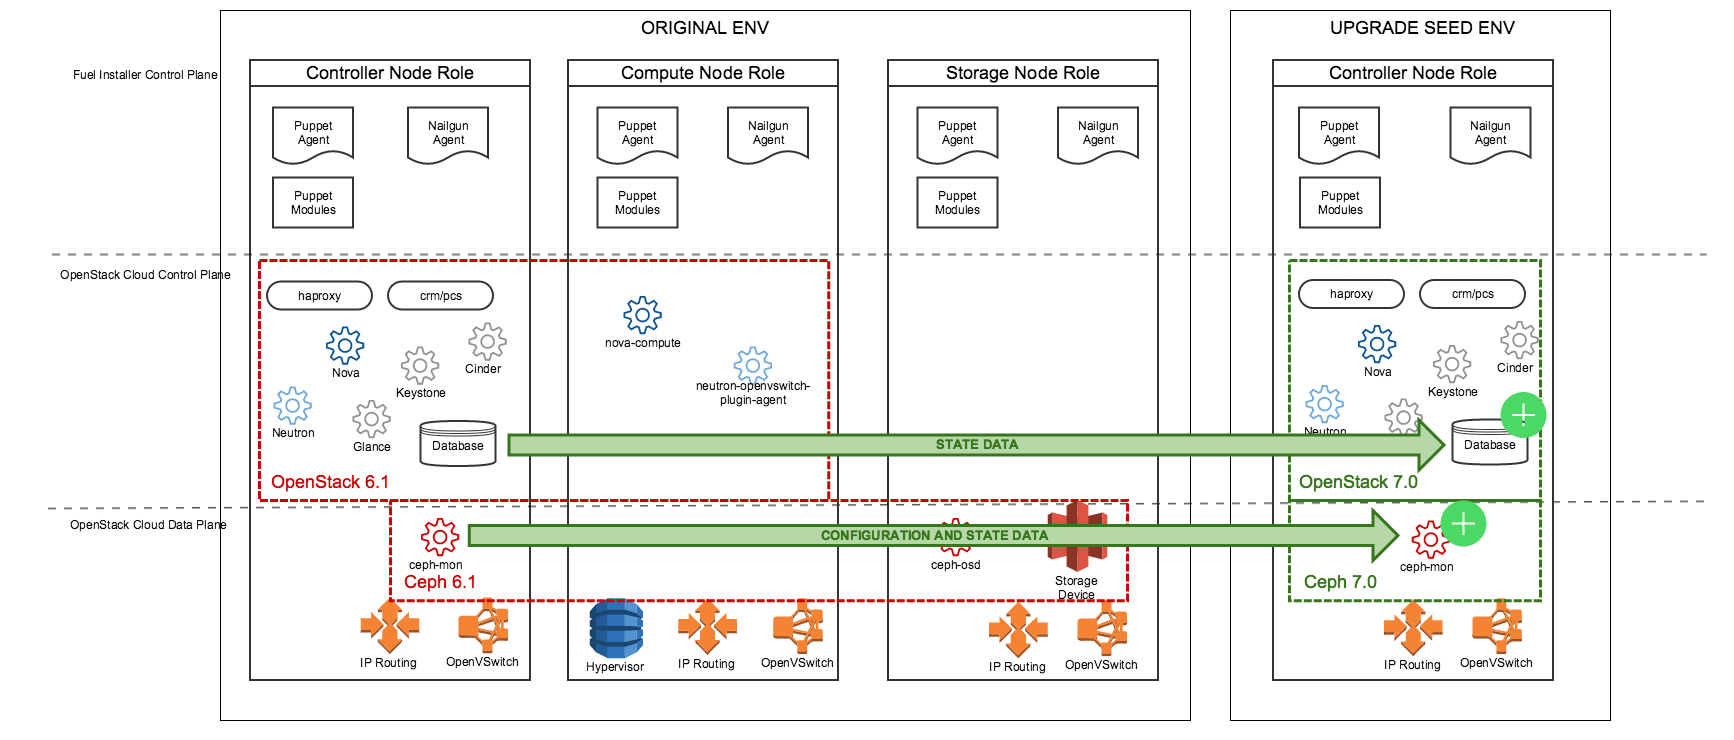 Upgrade An OpenStack Environment To A New Major Release